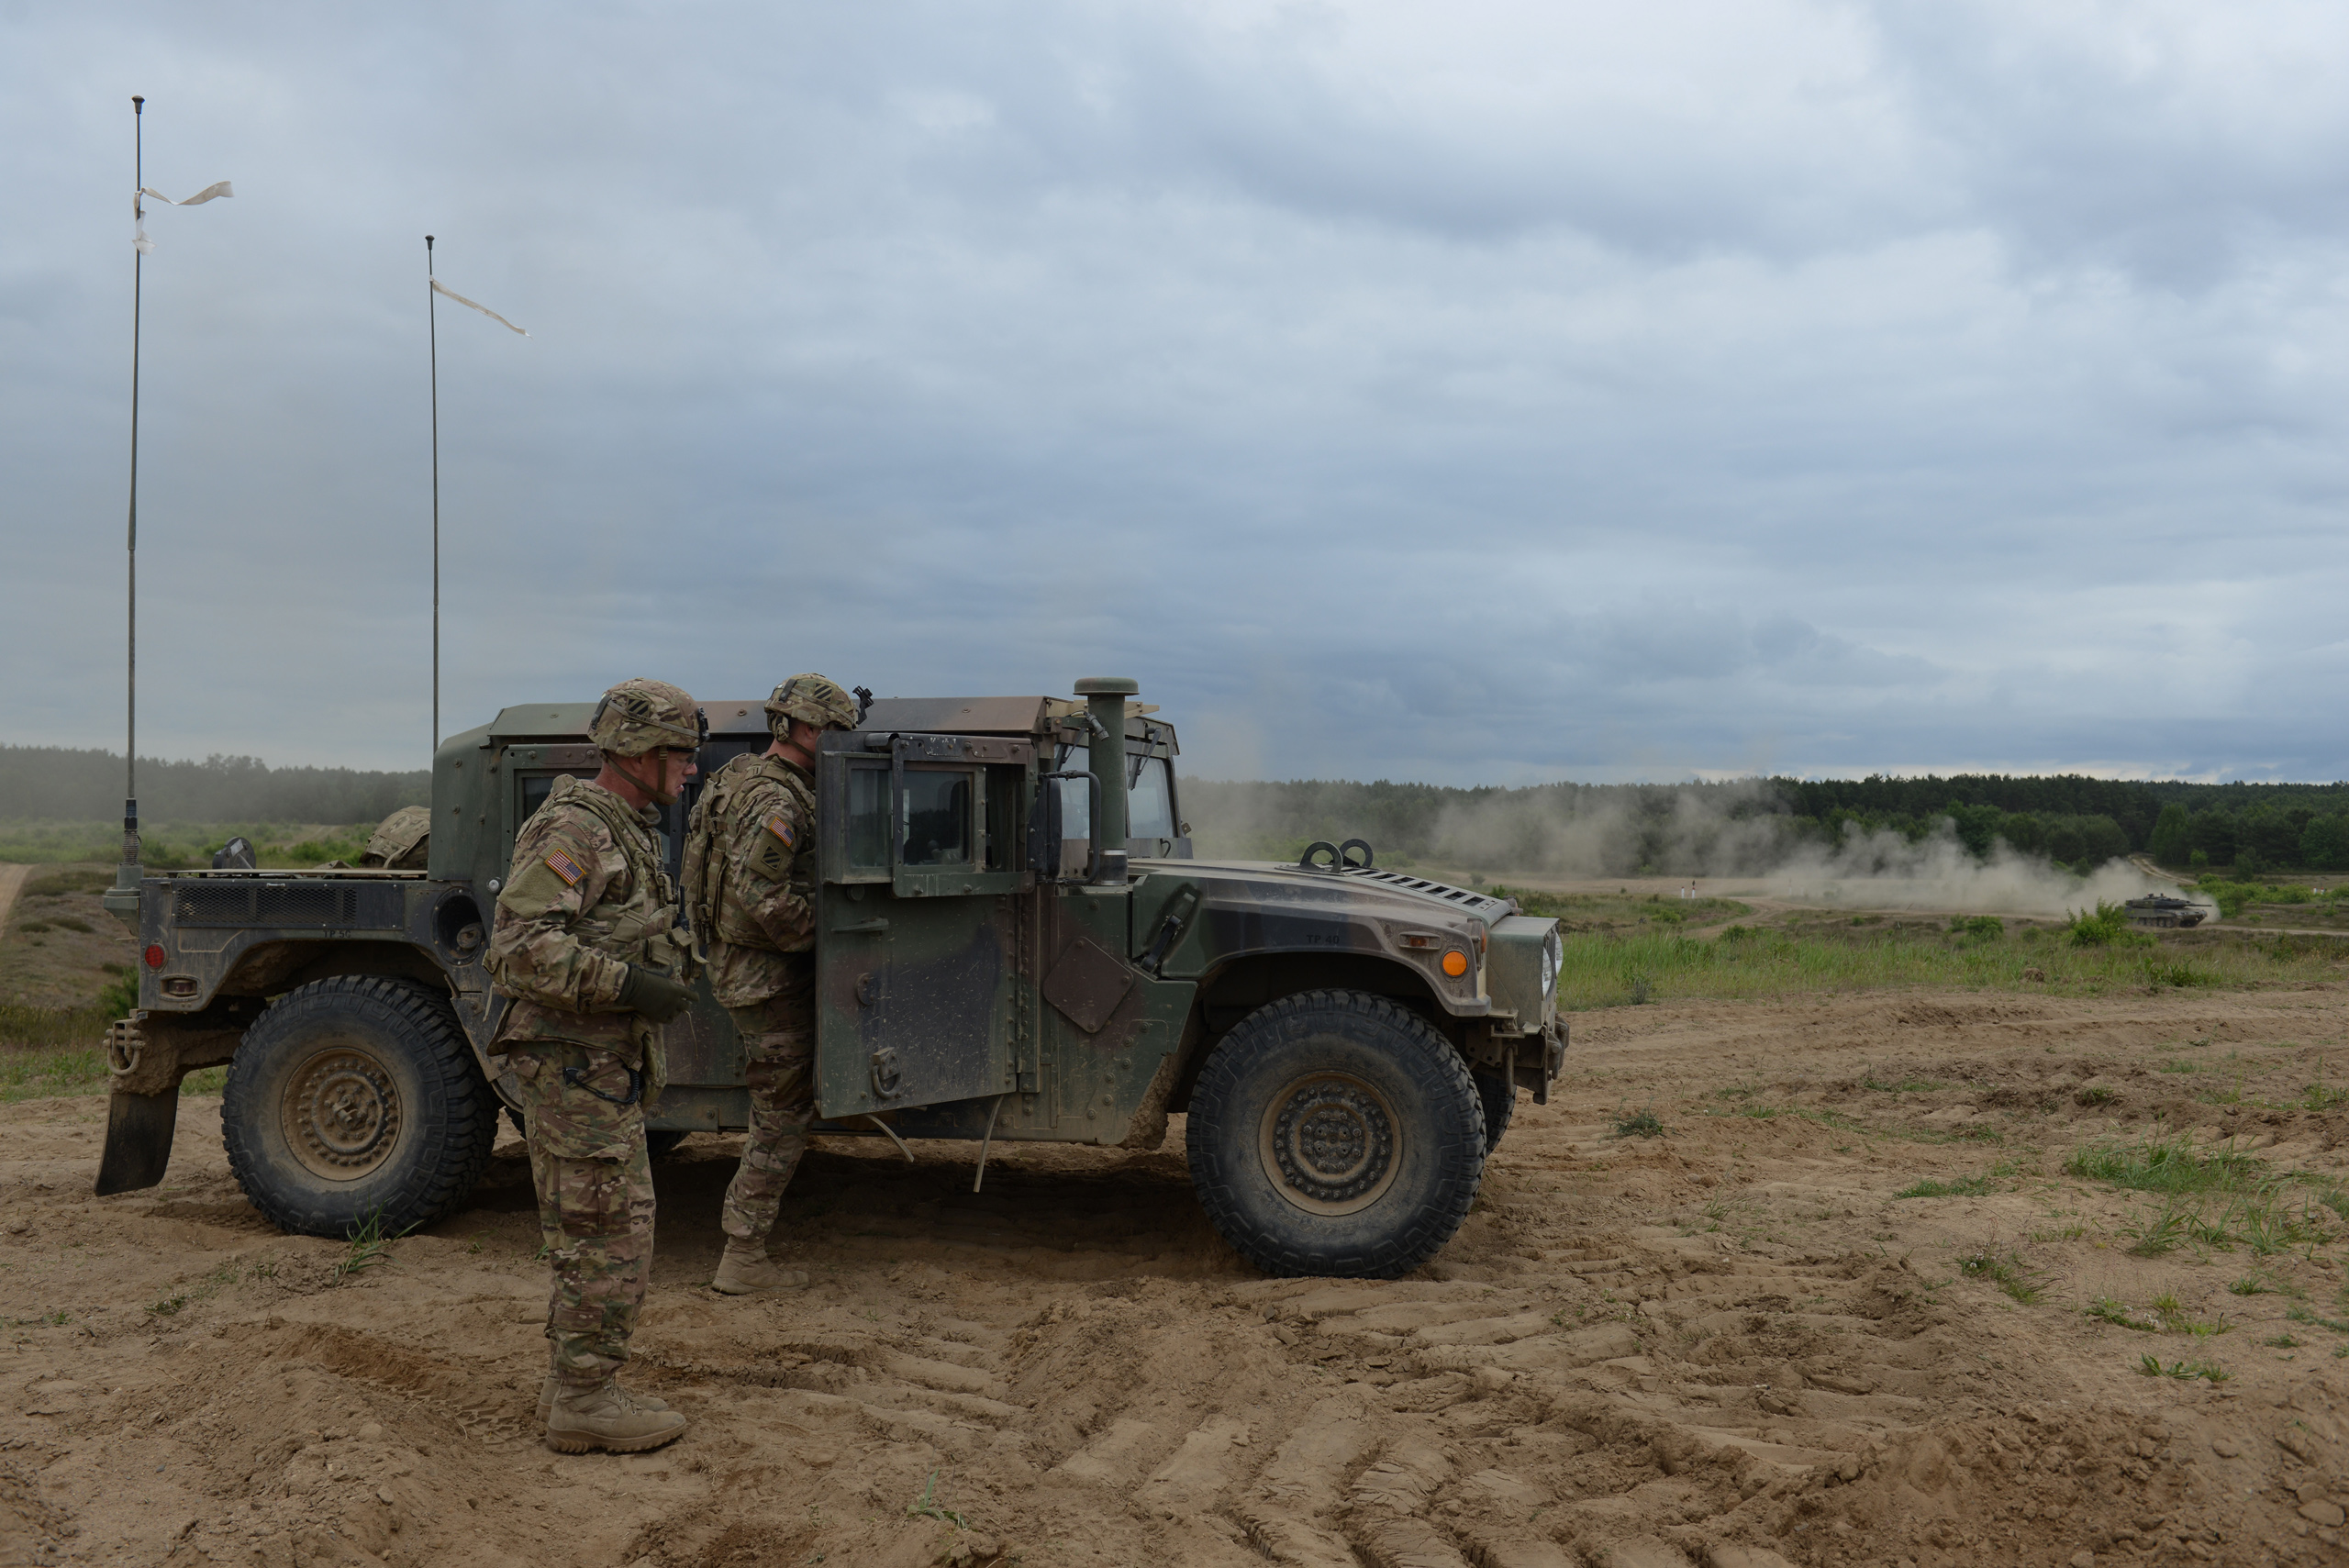 American soldiers with the  Second Battalion, Seventh Infantry Regiment, Third Infantry Division based out of Fort Stewart, Georgia beside a Humvee before a live fire exercise with a German-made Danish Leopard 2A5 tank on the horizon at the Drawsko Pomorskie Training Area in Poland on June 16, 2015.